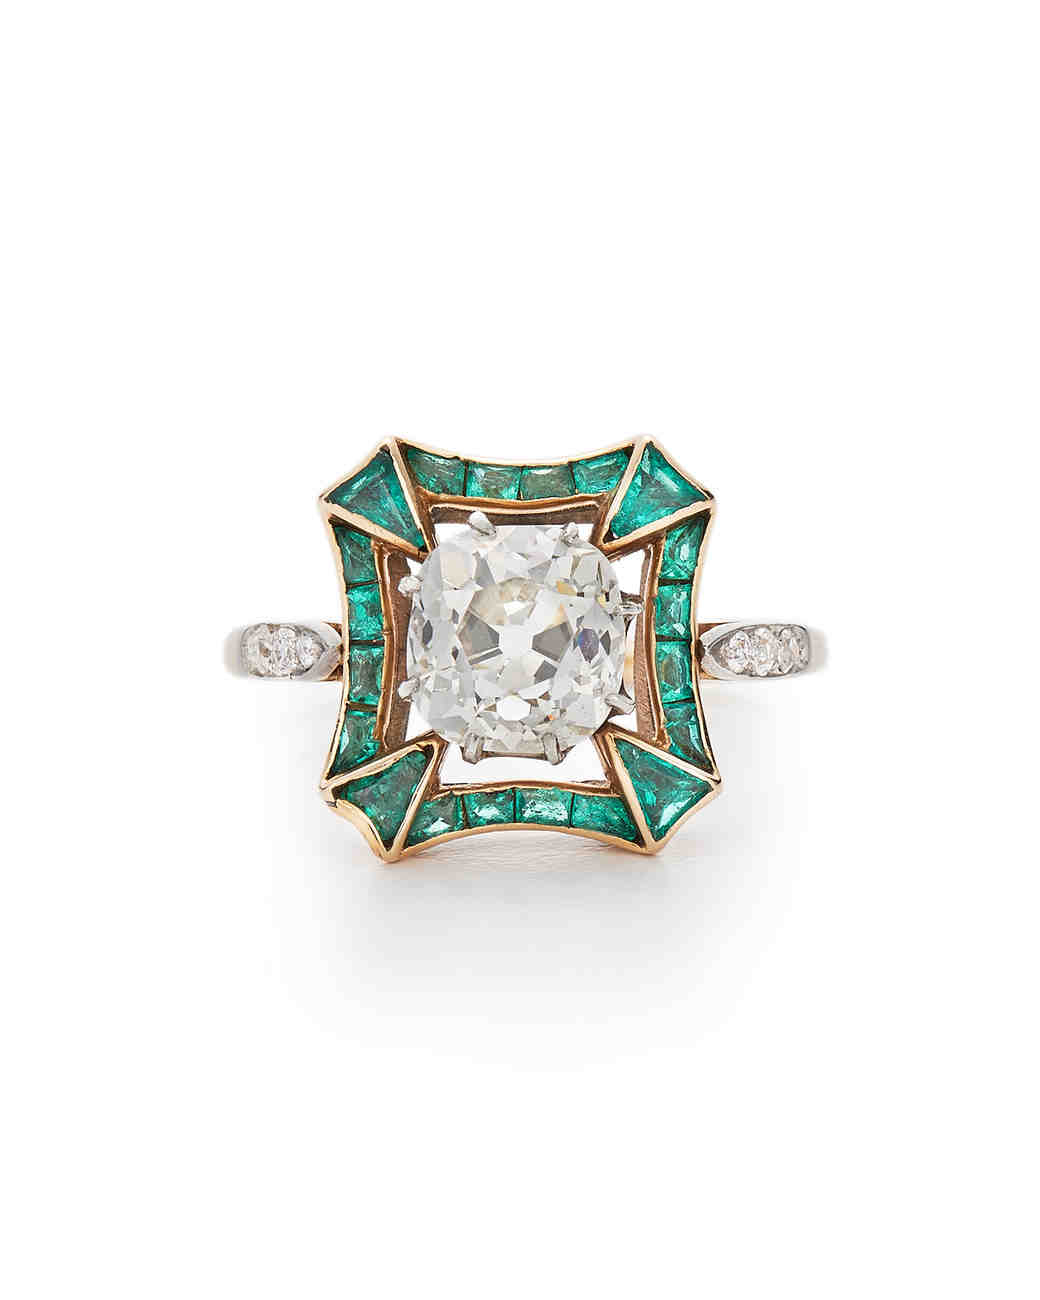 deco platinum art baguette ring emerald engagement gemstone rings jewellery diamond cut